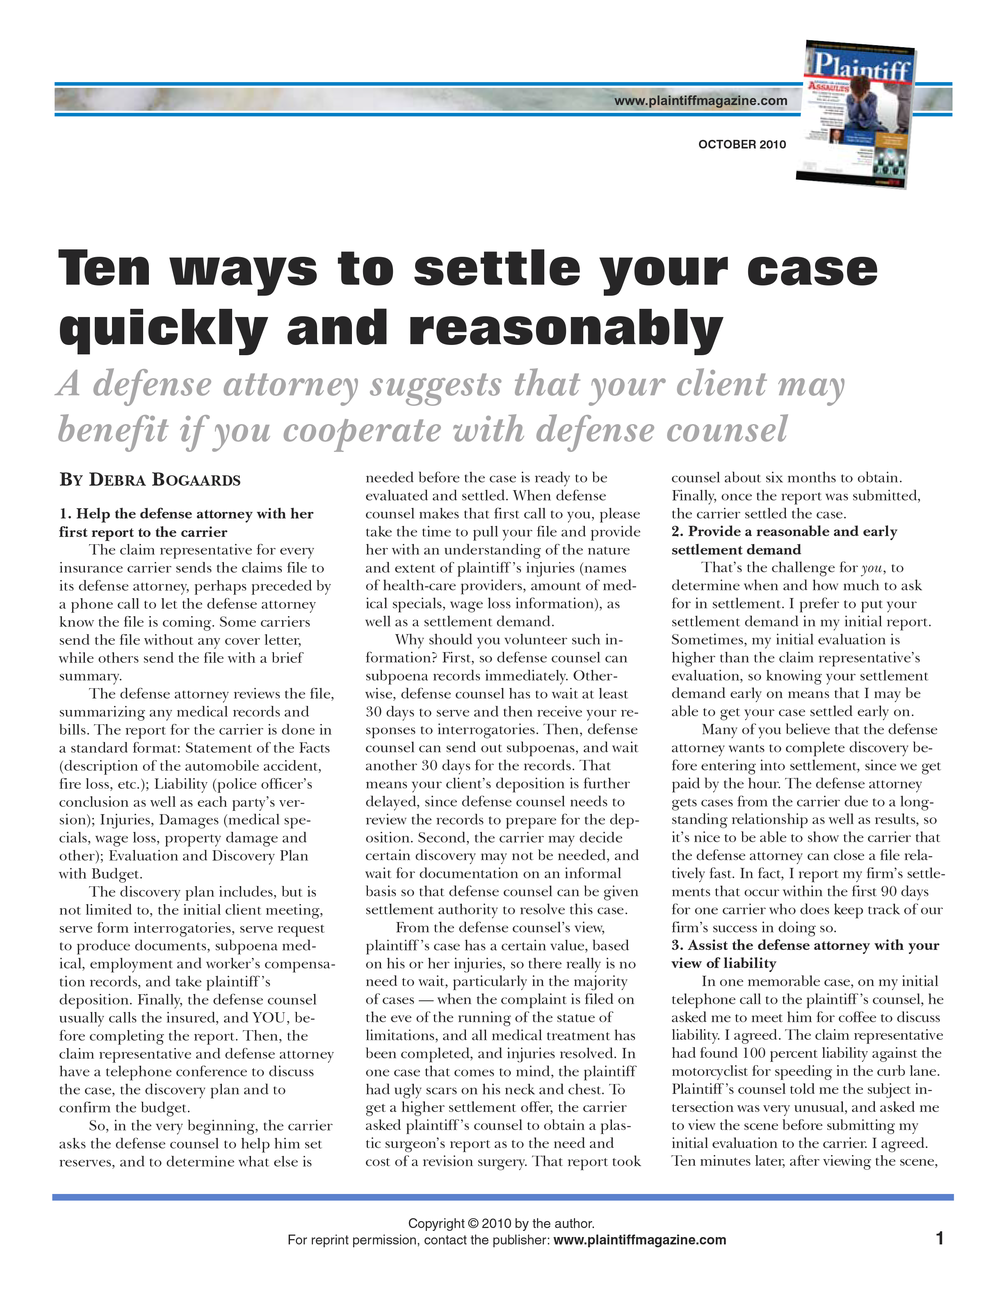 Ten Ways To Settle Your Case Quickly And Reasonably - Read  Ms. Bogaards' Article →